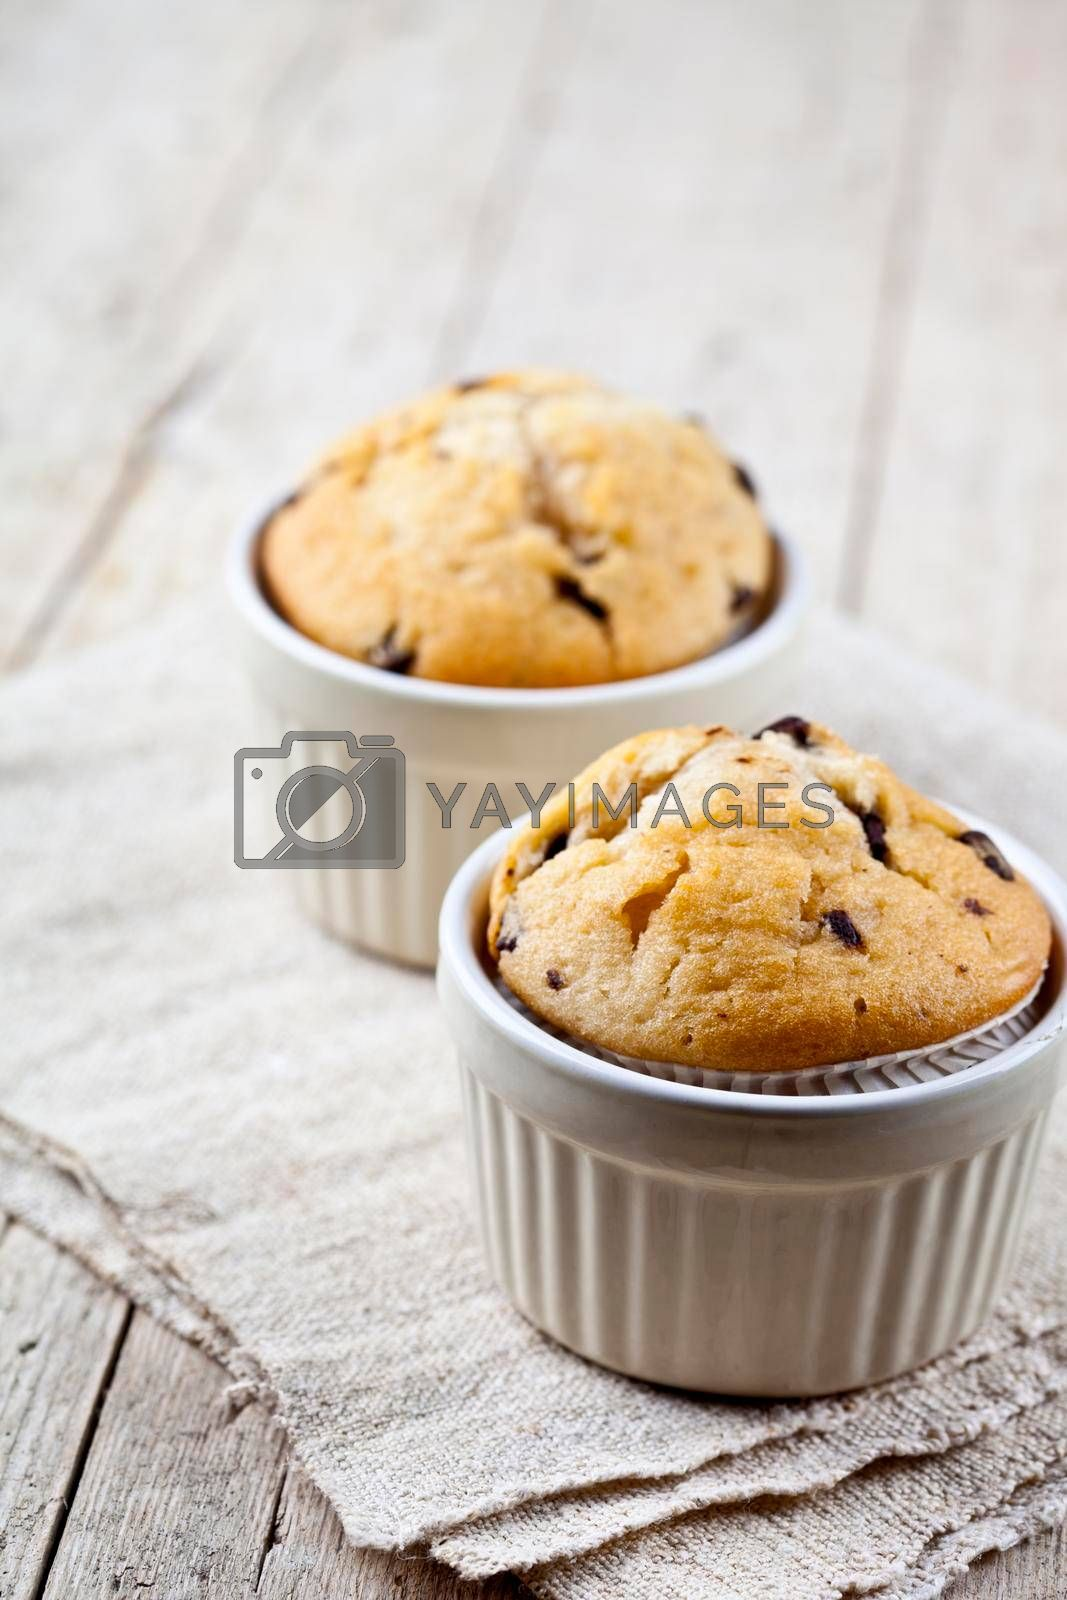 Two homemade fresh muffins on ceramic white bowls on linen napkin on rustic wooden table background.